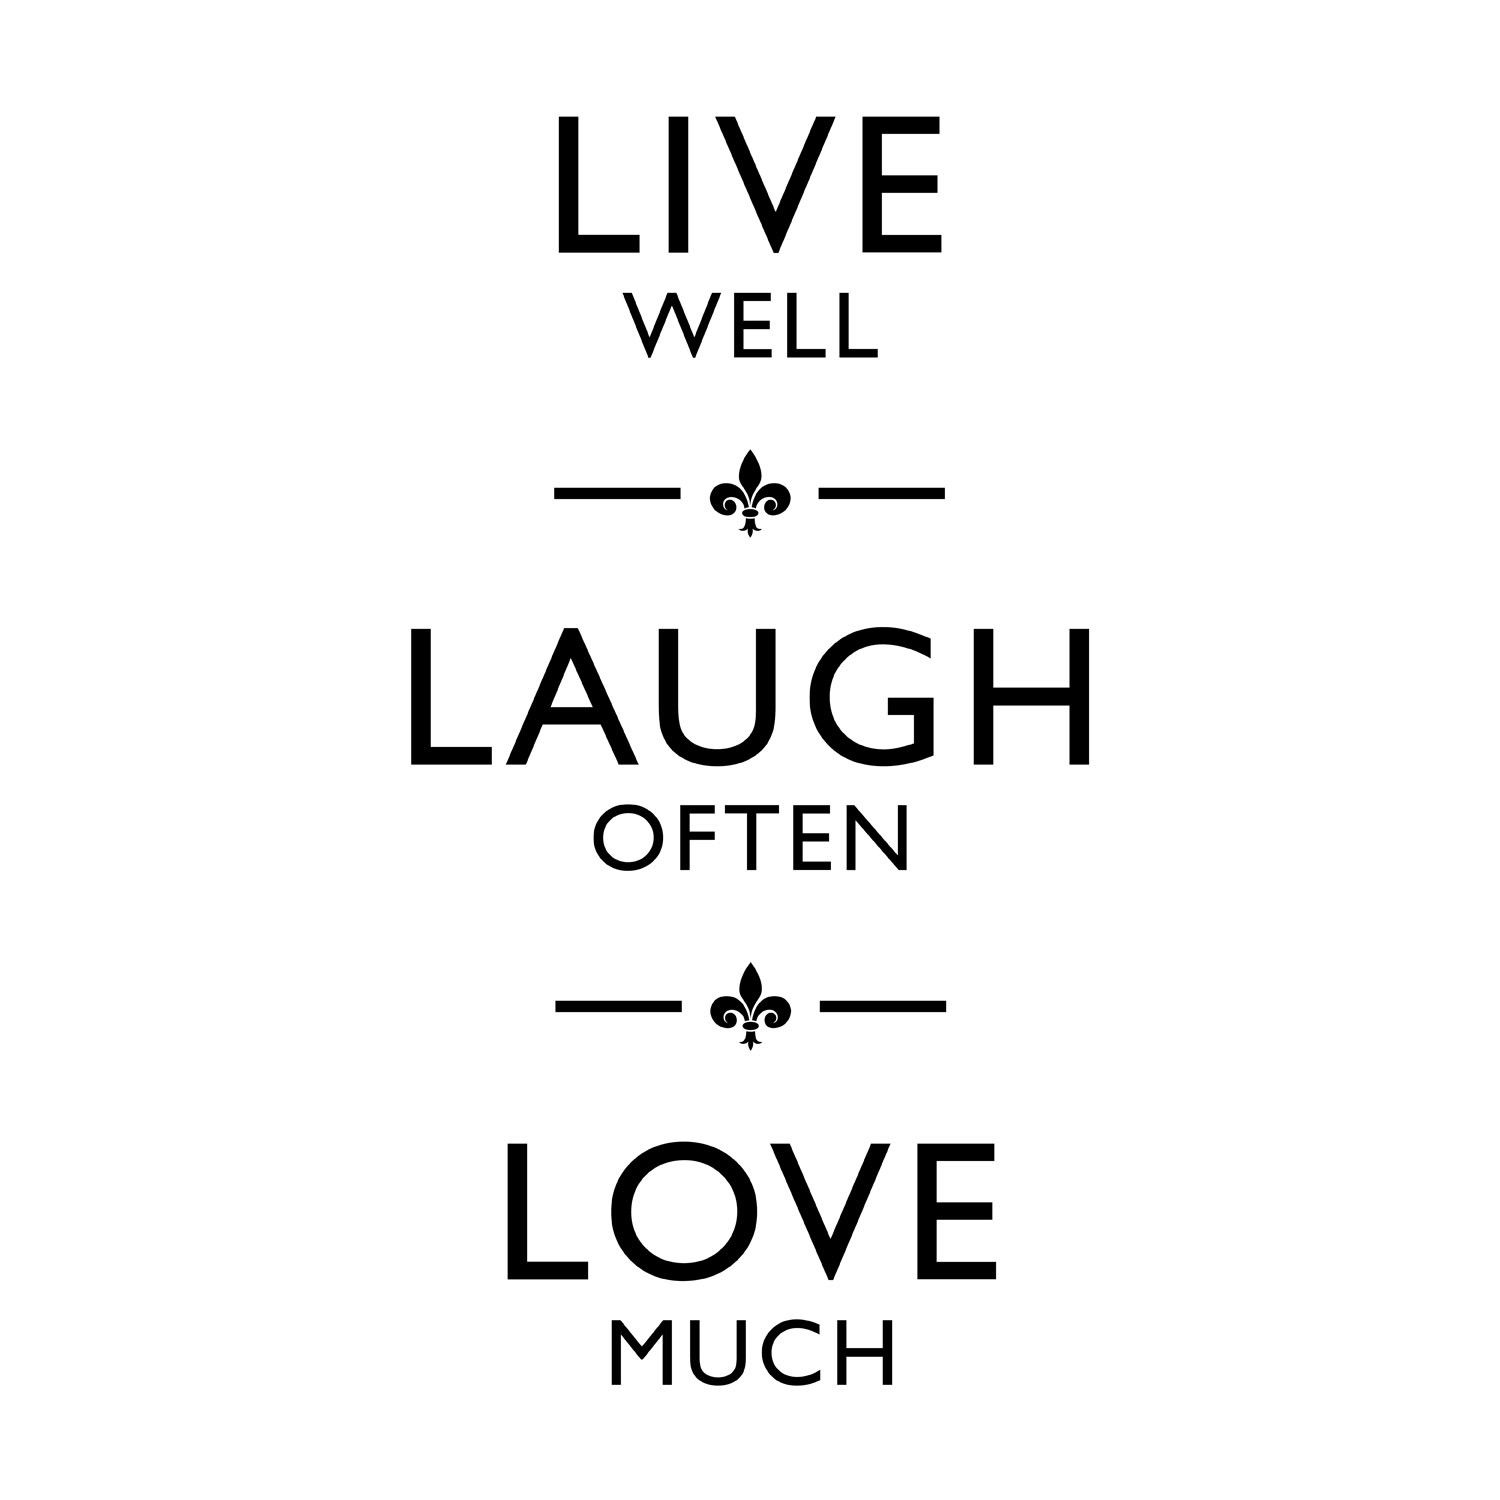 Live Laugh Love Quotes Love And Laughter Quotes Live Laugh Love Quote Wall  Advice To My